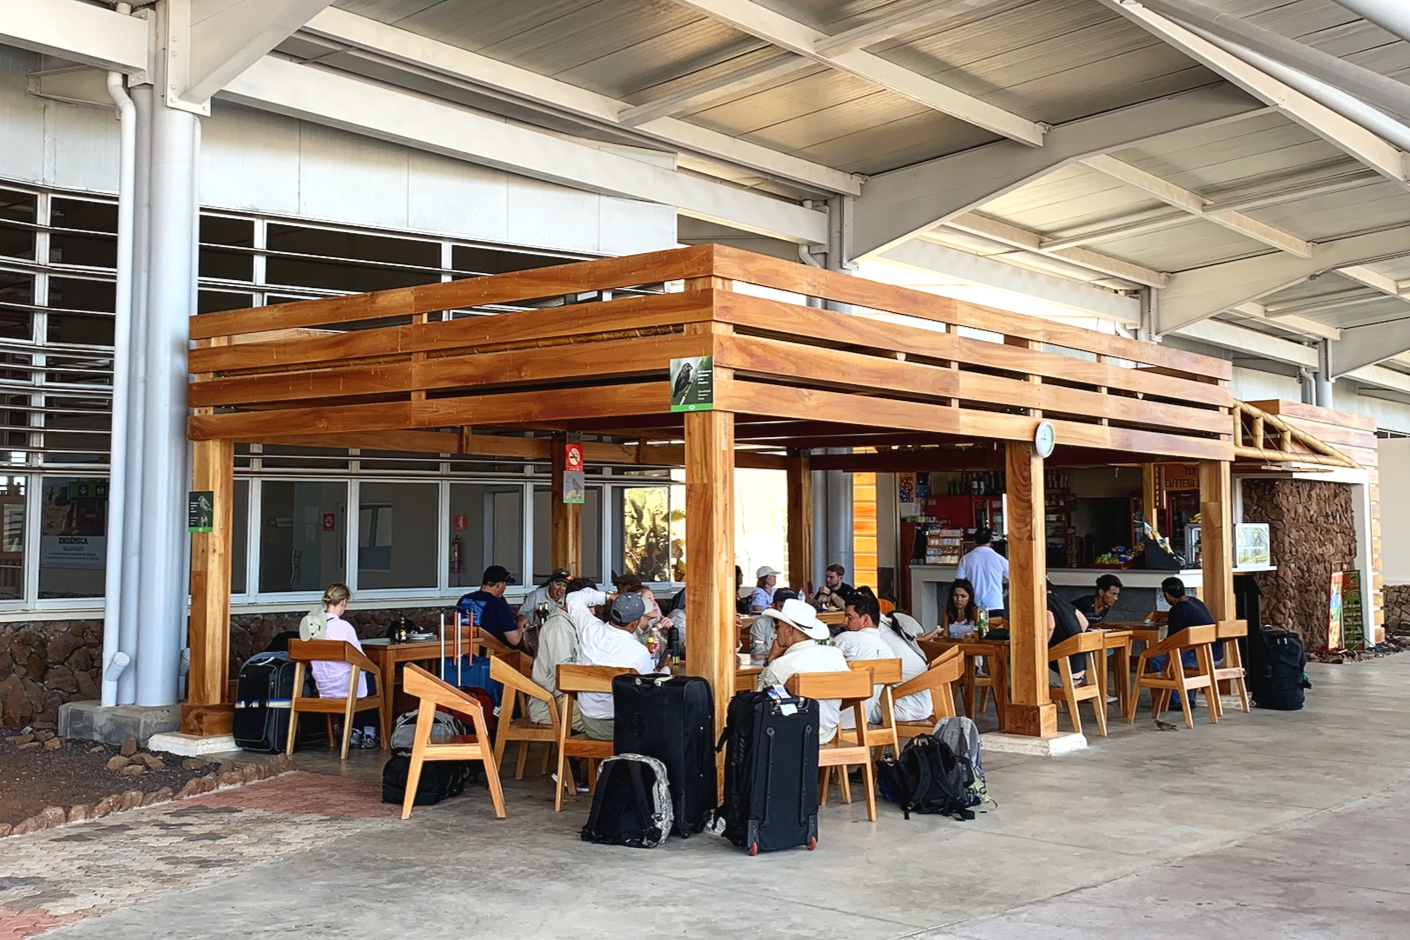 The outside cafe at Baltra airport.